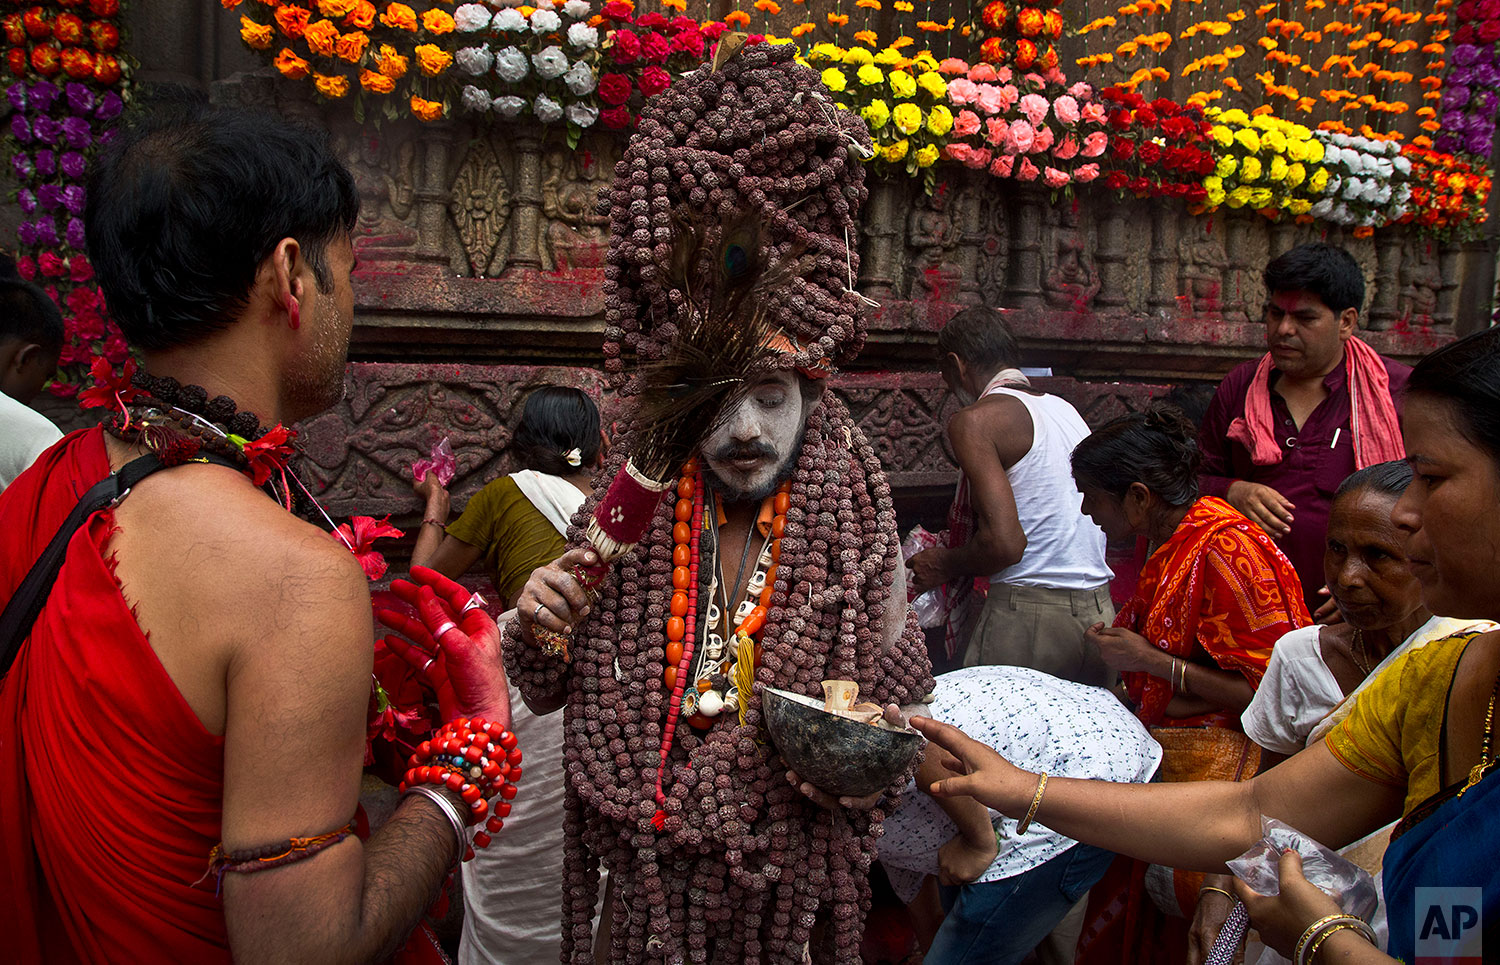 A Sadhu, or Hindu holy man, blesses devotees during Ambubachi festival at Kamakhya templein Gauhati, India, June 25, 2019 . The temple is presided over by the goddess Kamakhya, the most important goddess of tantric worship, an esoteric form of Hinduism. The four-day Ambubachi festival is a celebration of Kamakhya's yearly menstrual cycle, and it brings hundreds of thousands of devotees to the temple. (AP Photo/Anupam Nath)